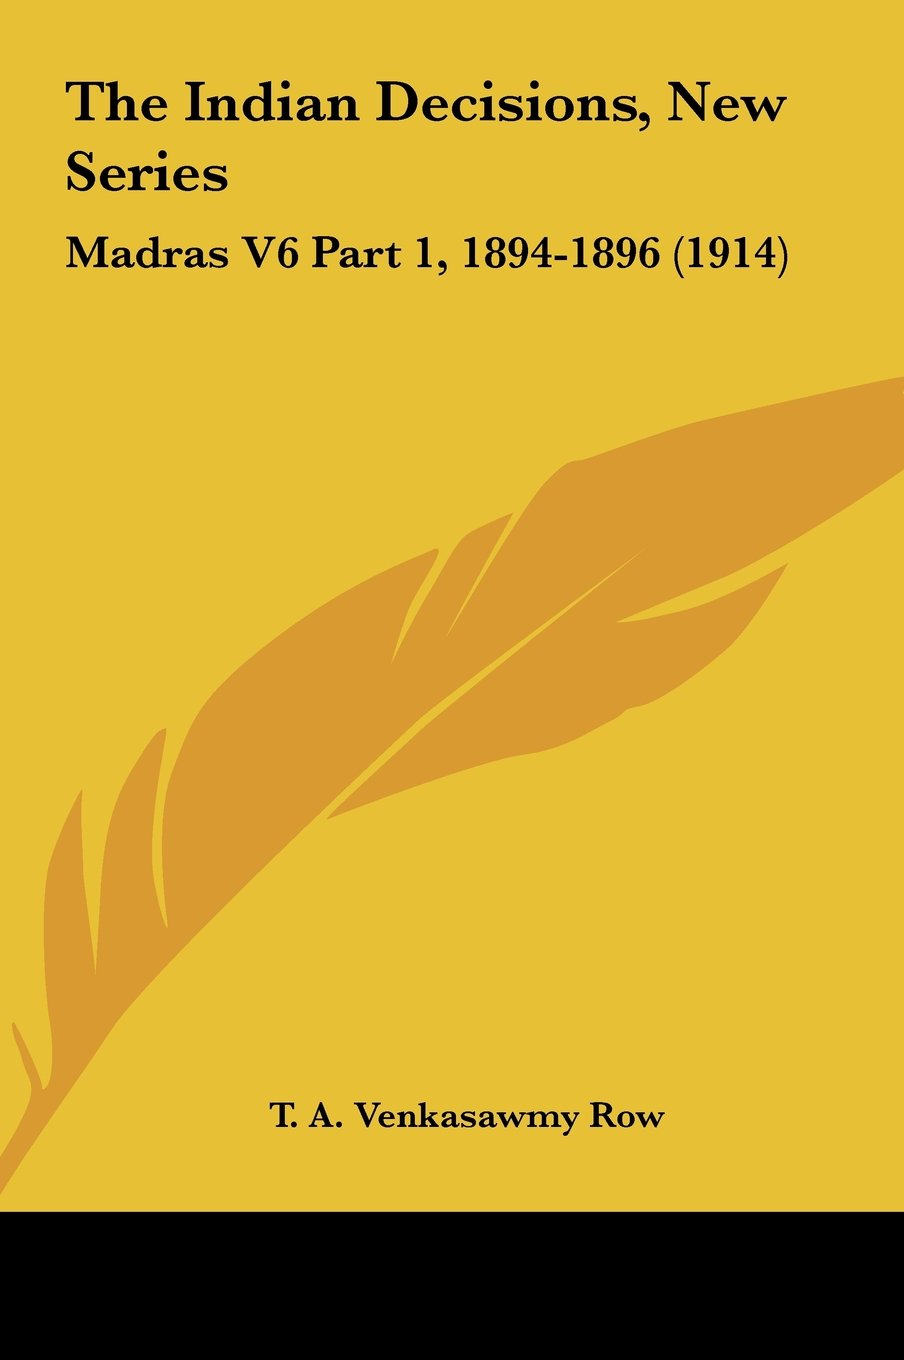 Download The Indian Decisions, New Series: Madras V6 Part 1, 1894-1896 (1914) PDF